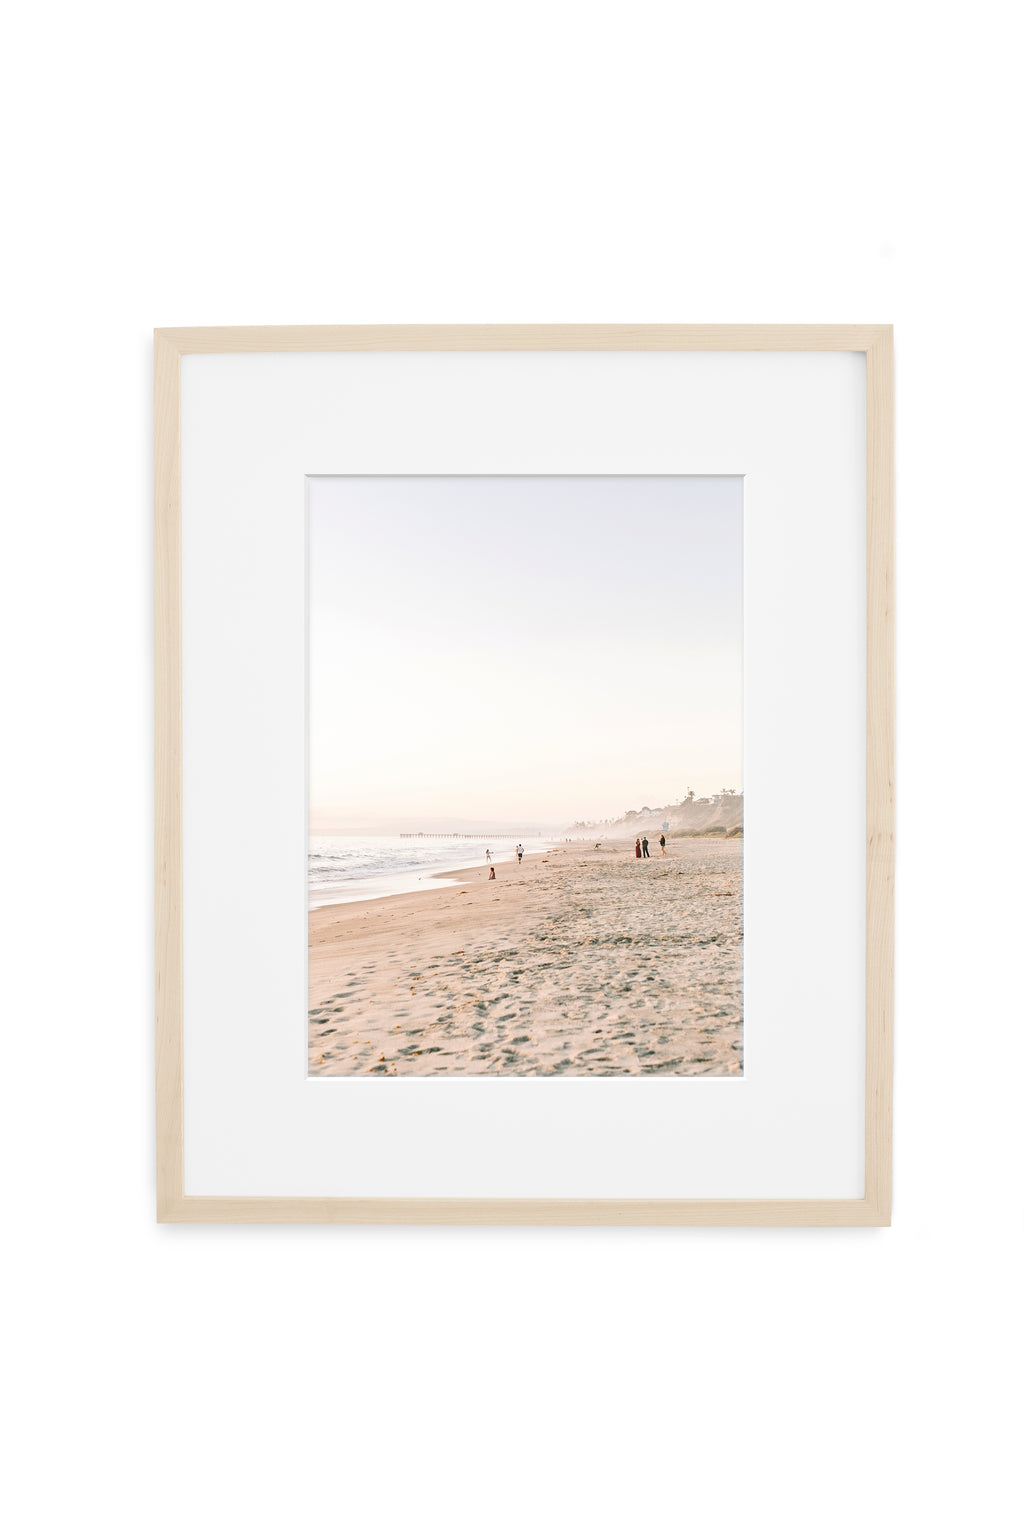 oceanside california beach print